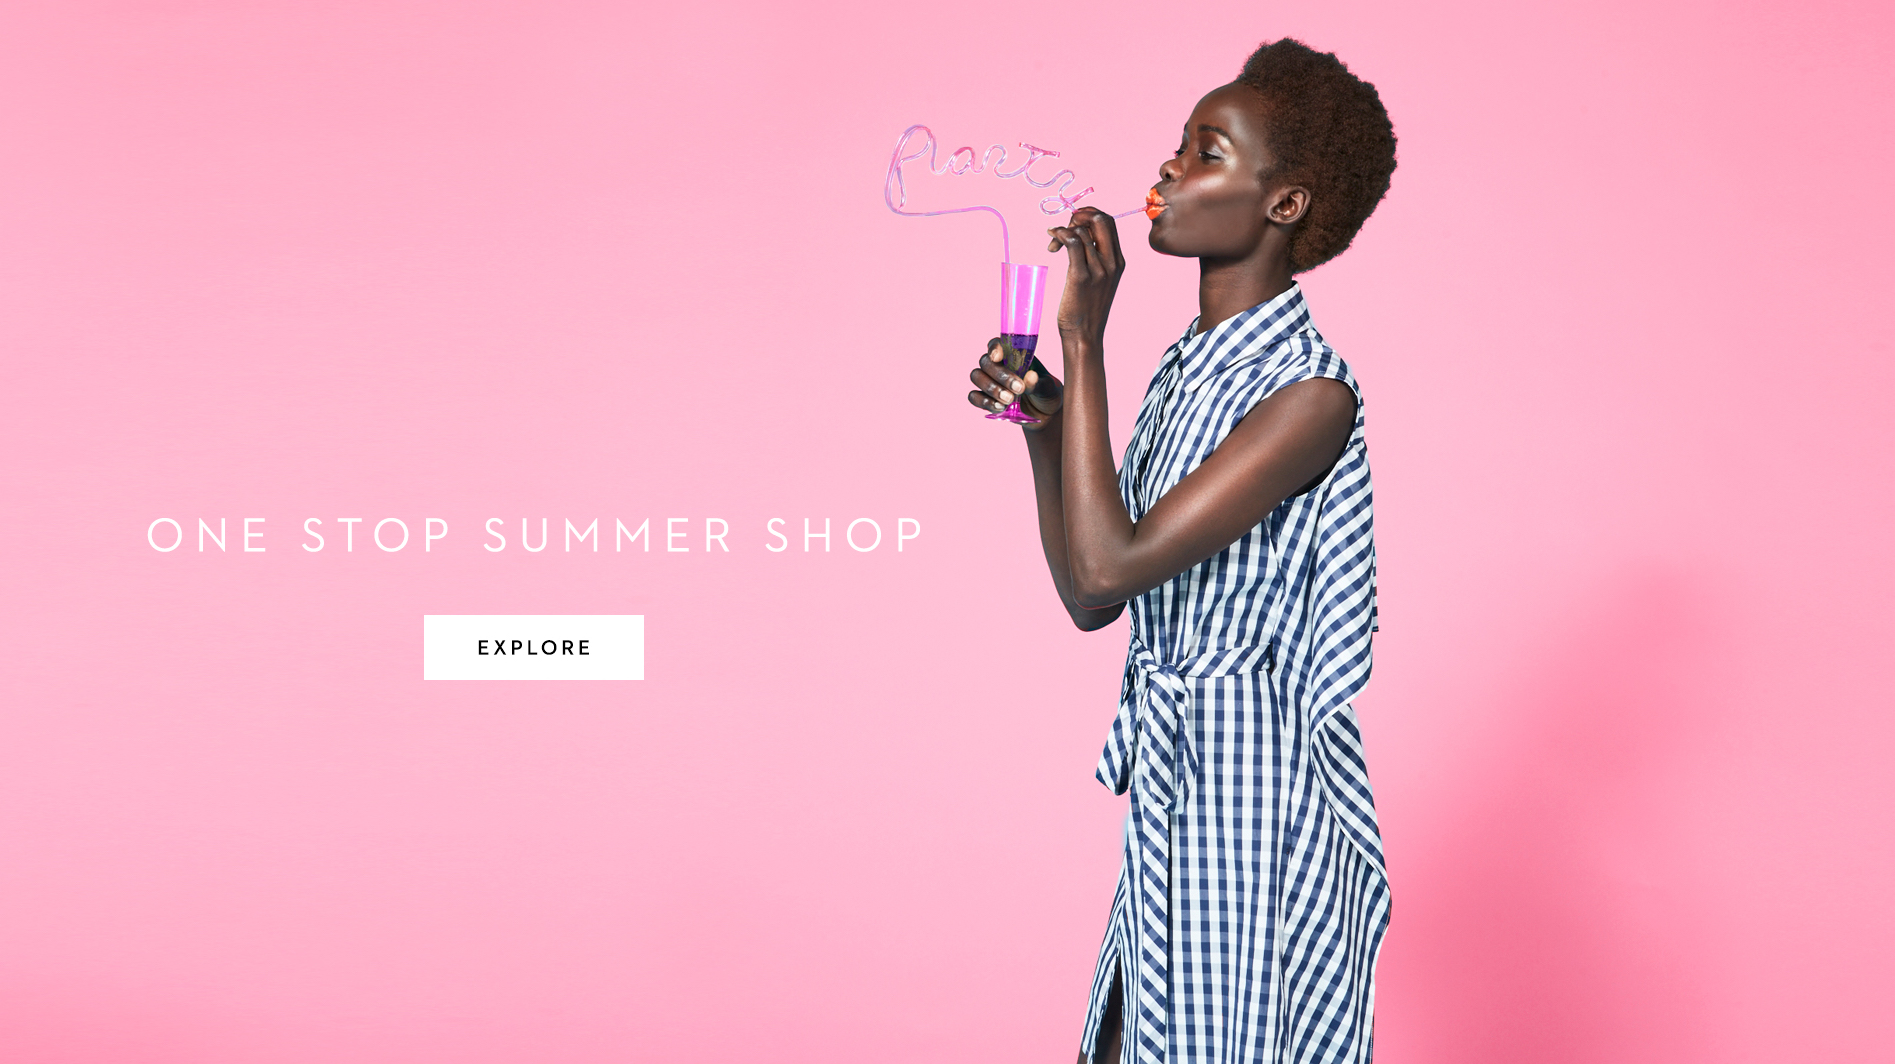 one-stop-summer-shop-desktop.jpg